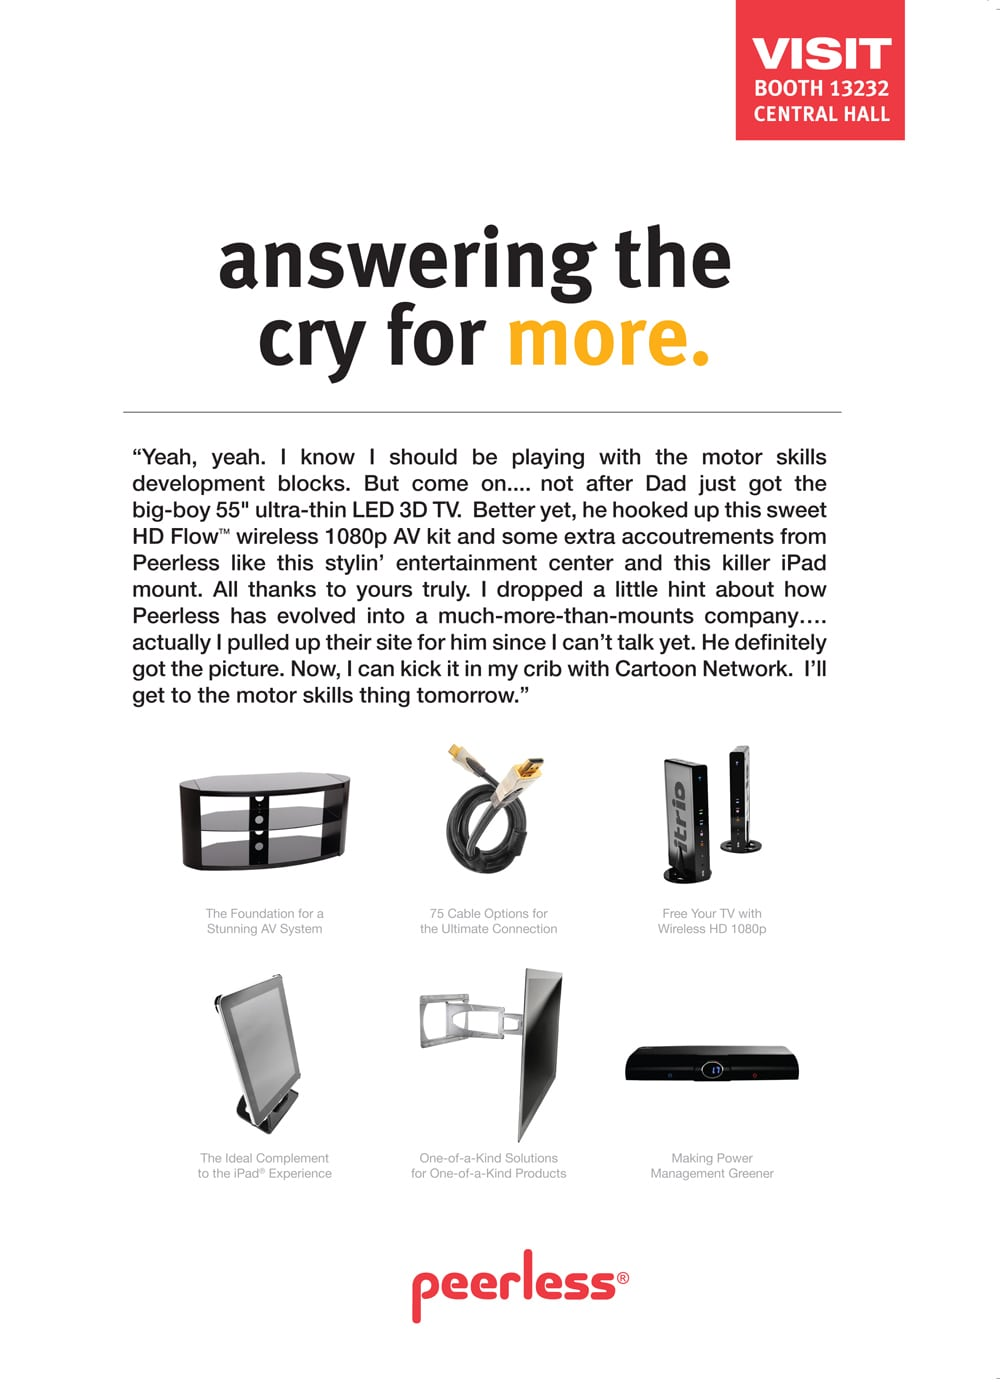 """Ad Page for Peerless accessories featuring product shots of items and headline of """"answering the cry for more"""" Product Photography"""